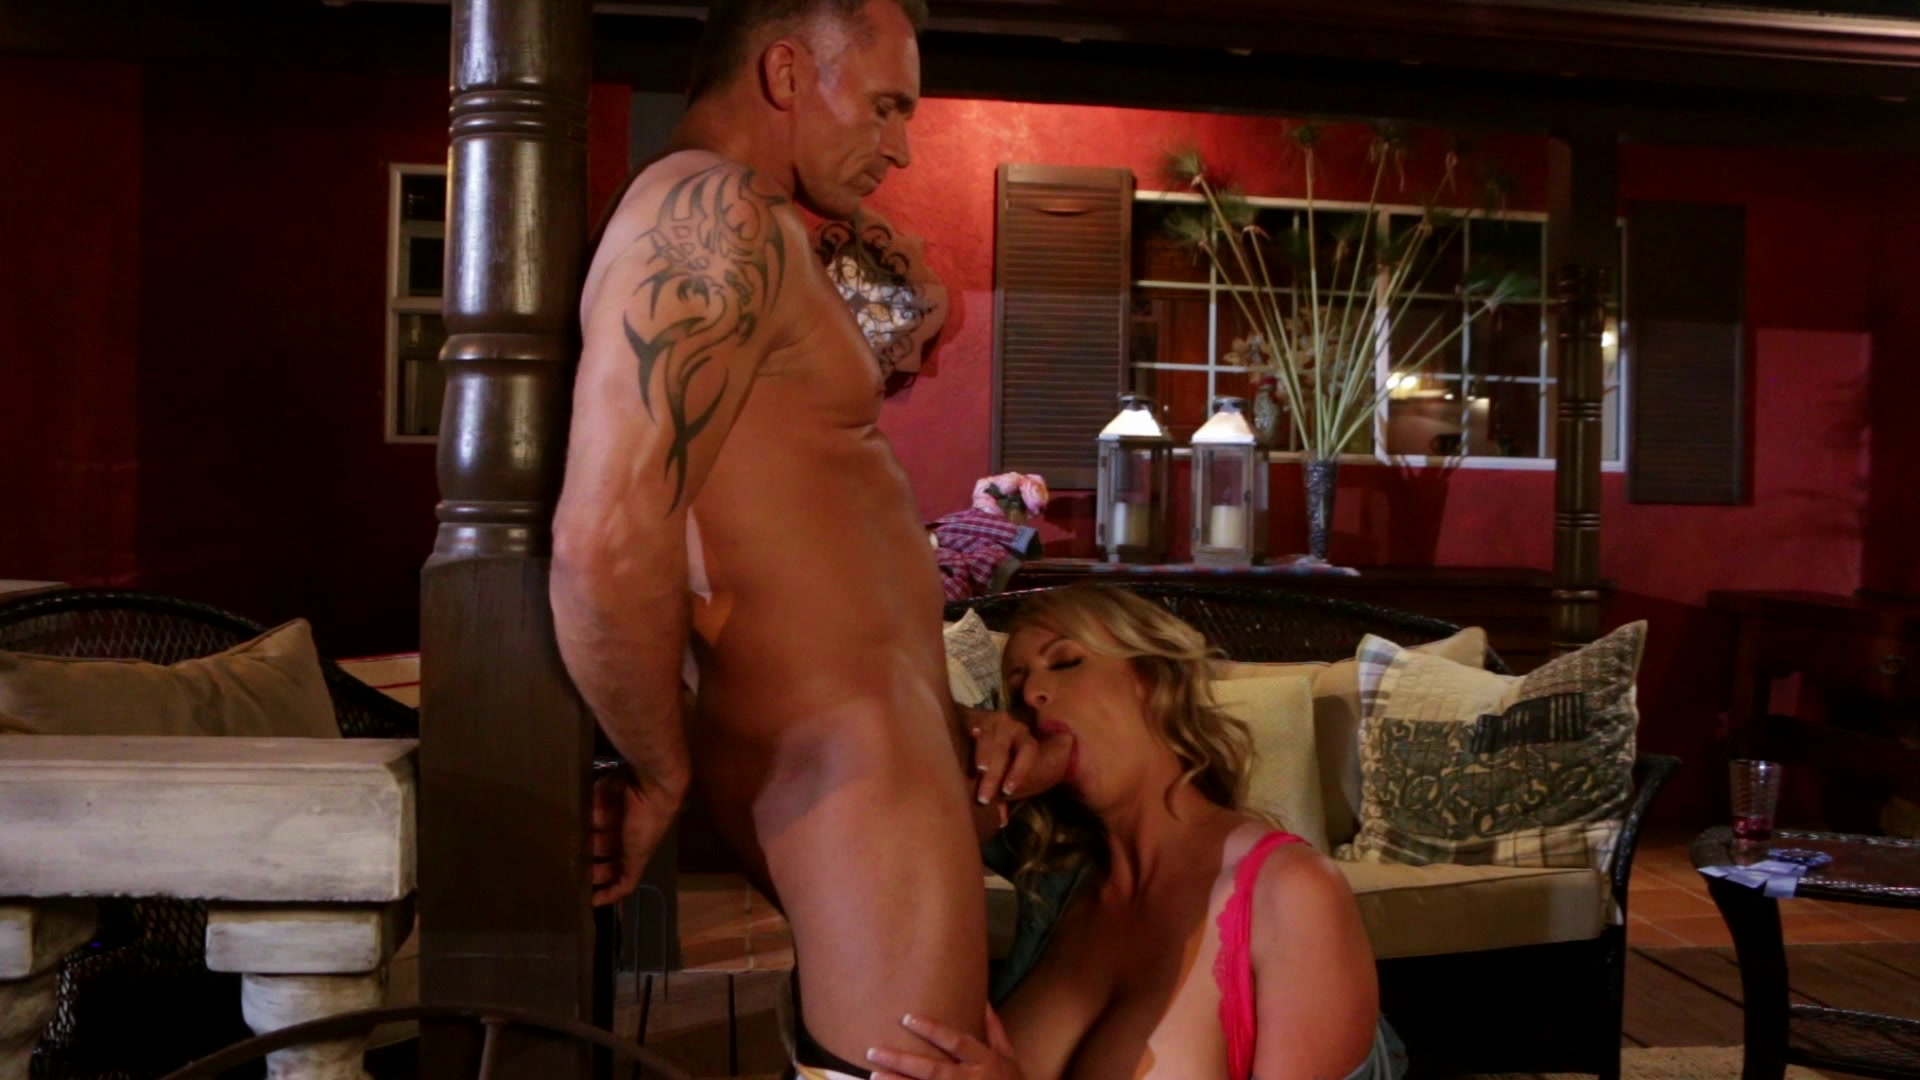 Scene with Stormy Daniels - image 17 out of 20